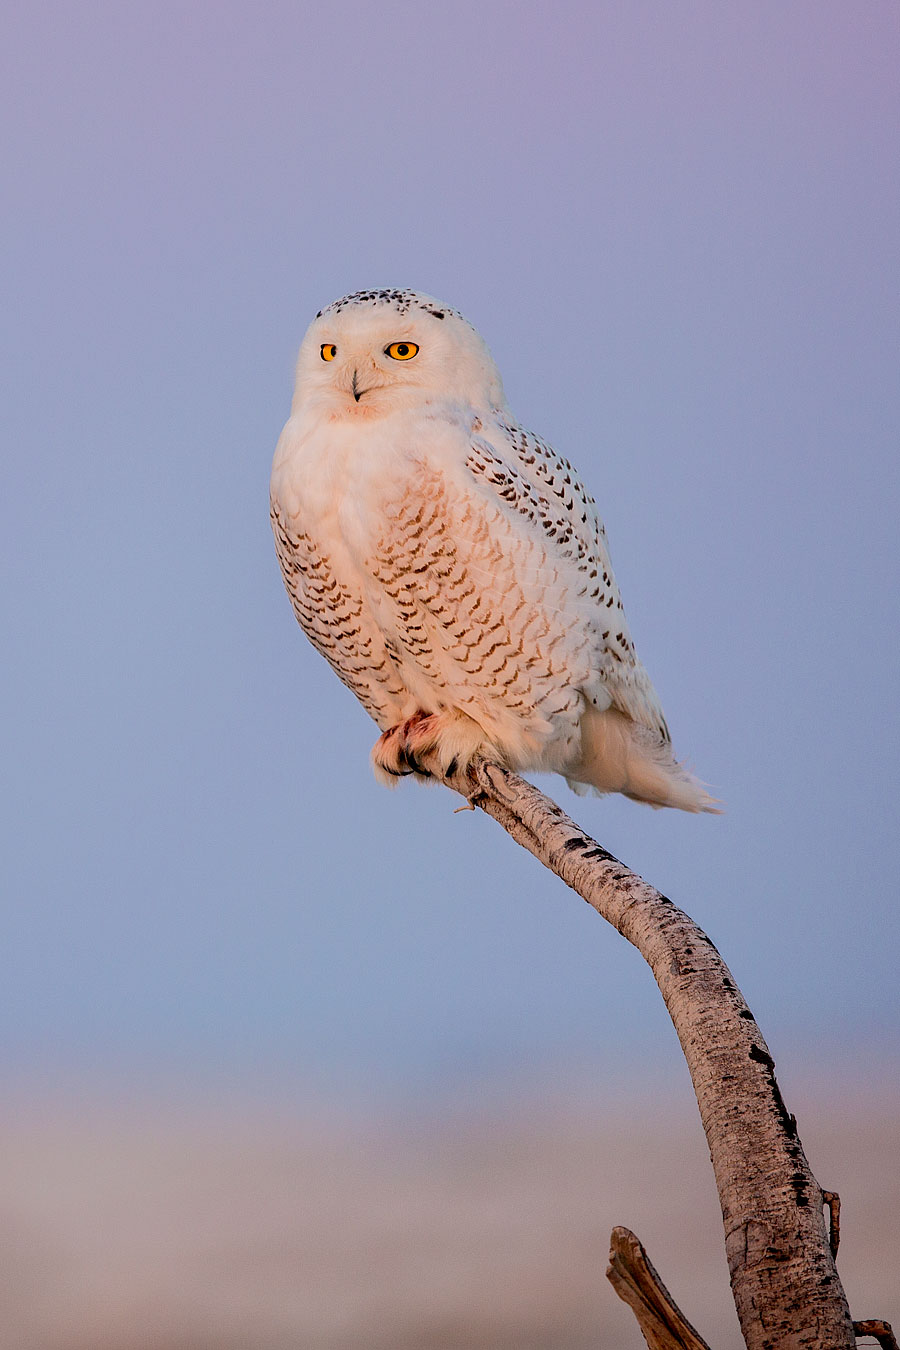 That title made it sound like it was not a bad pun for more, gratuitous Snowy Owl photos